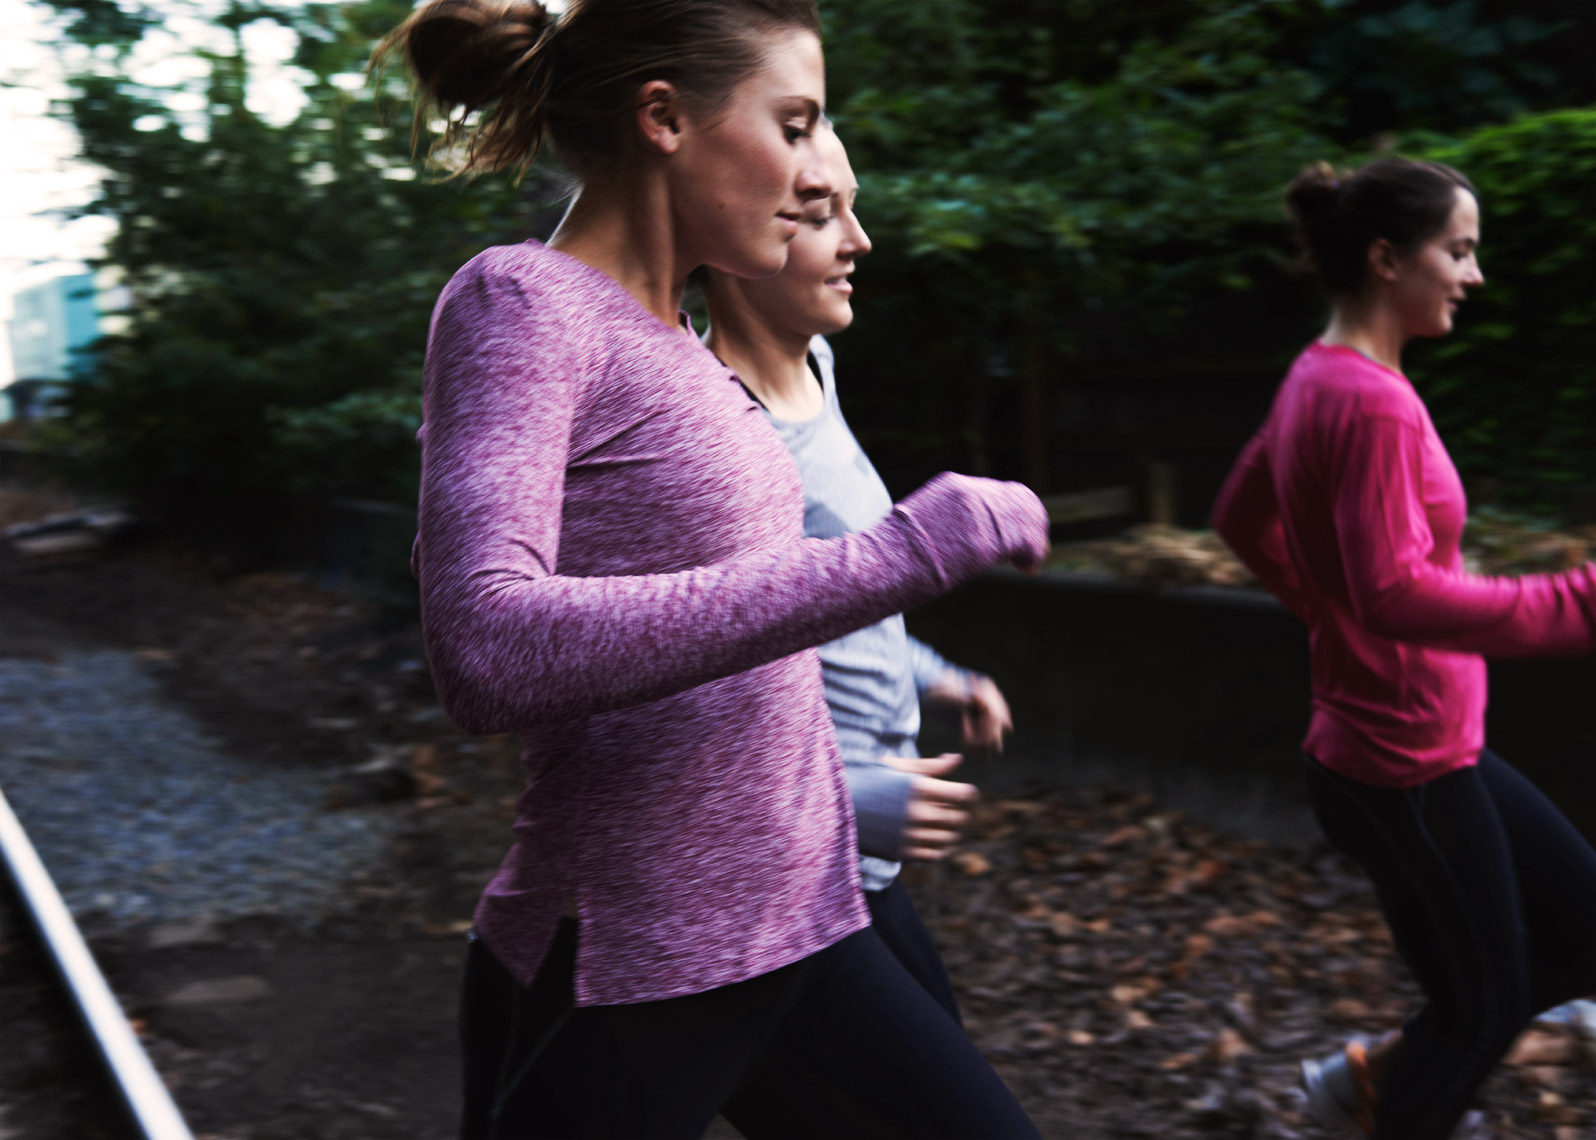 Group Run for Oiselle brand photo shoot